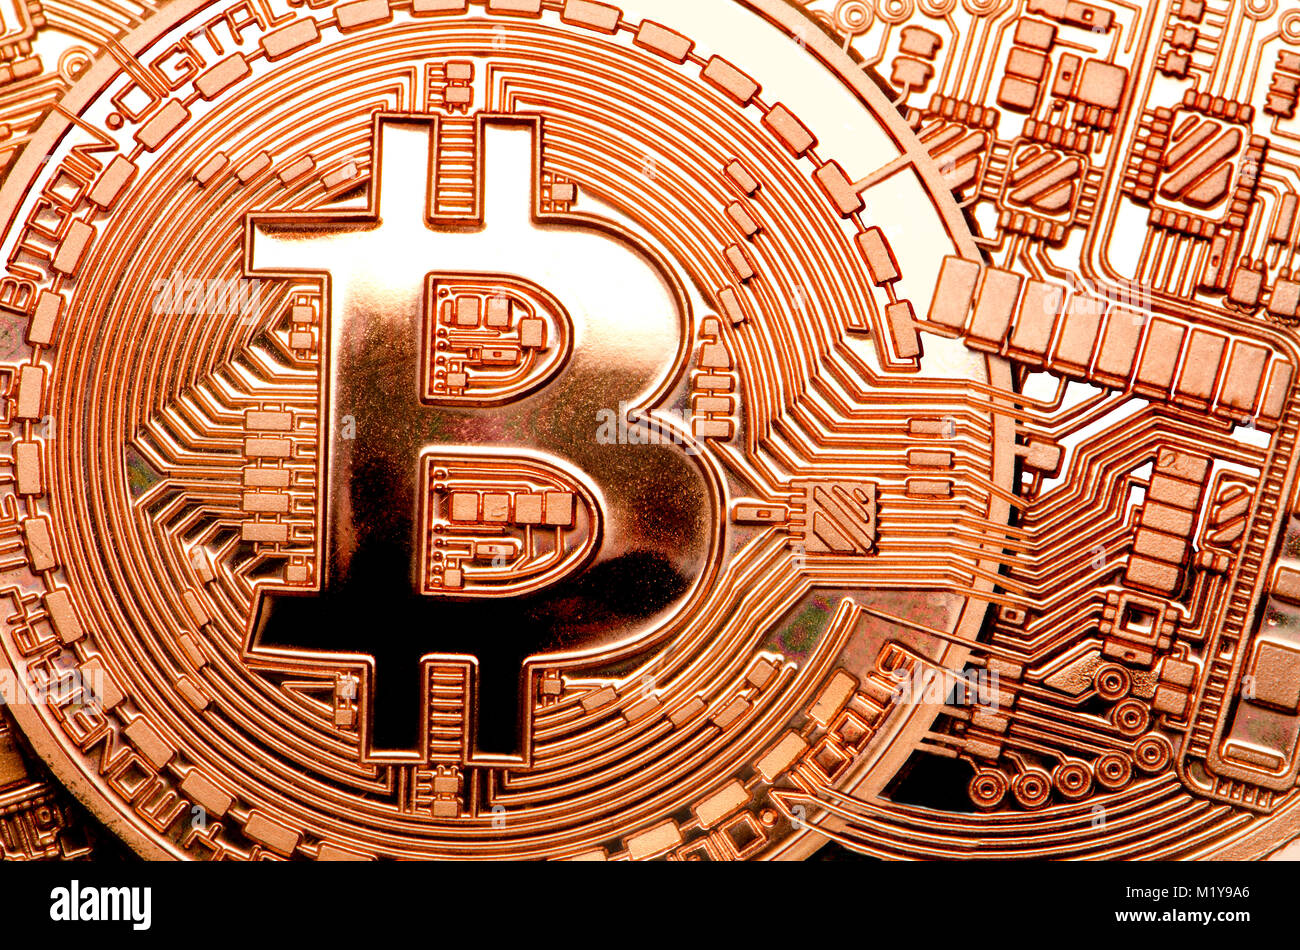 Bitcoin cryptocurrency / payment system (Copper Bitcoin Commemorative Round .999 bullion) Electronic currency - - Stock Image